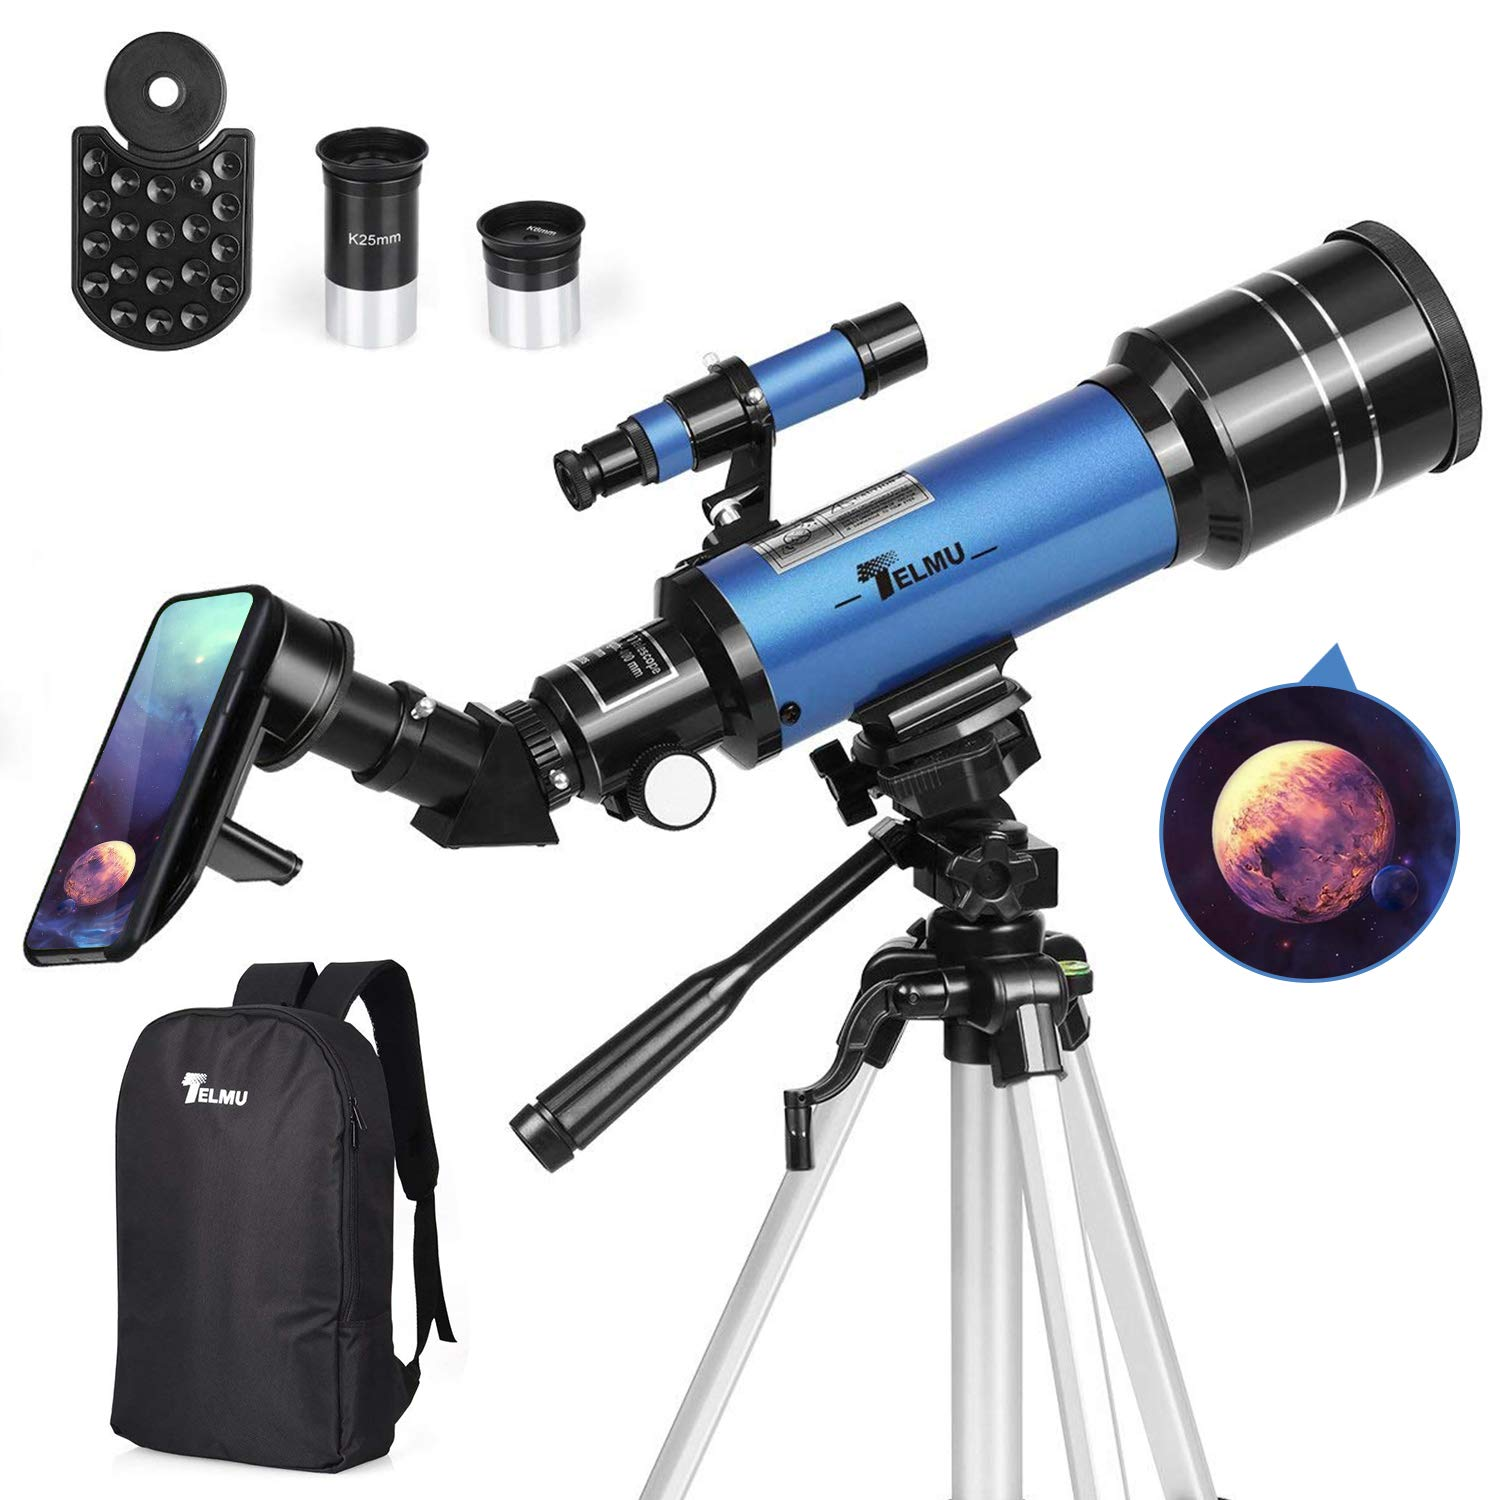 TELMU Telescope 70mm Aperture Refracting Telescope Adjustable(17.7In-35.4In) Portable Travel Telescopes for Astronomy with Backpack, Phone Adapter for Any Model by TELMU